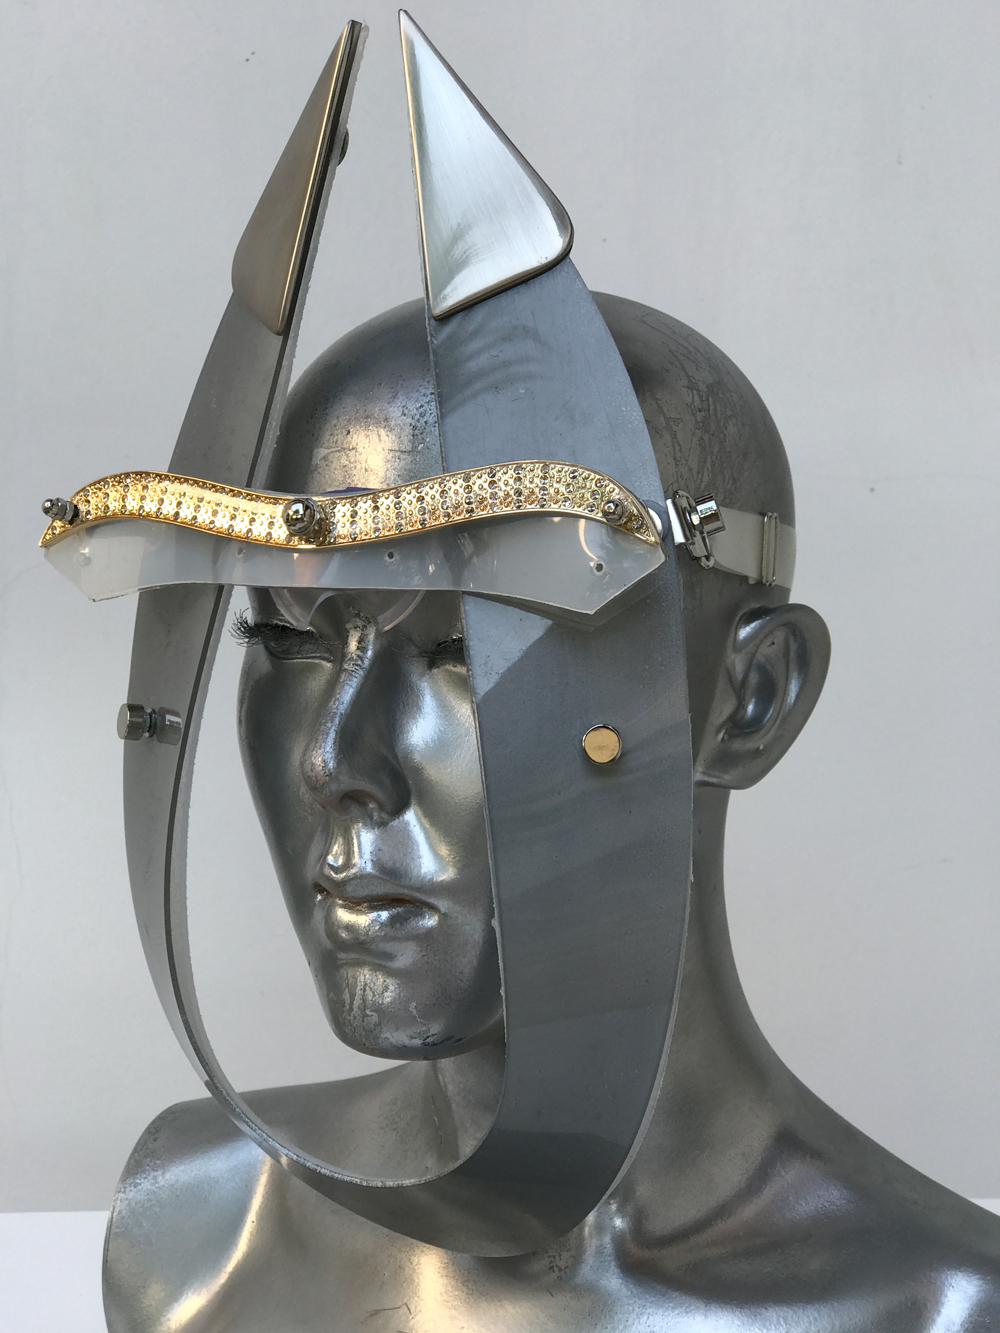 silver mask with horns and metal components, styling video, Burning Man